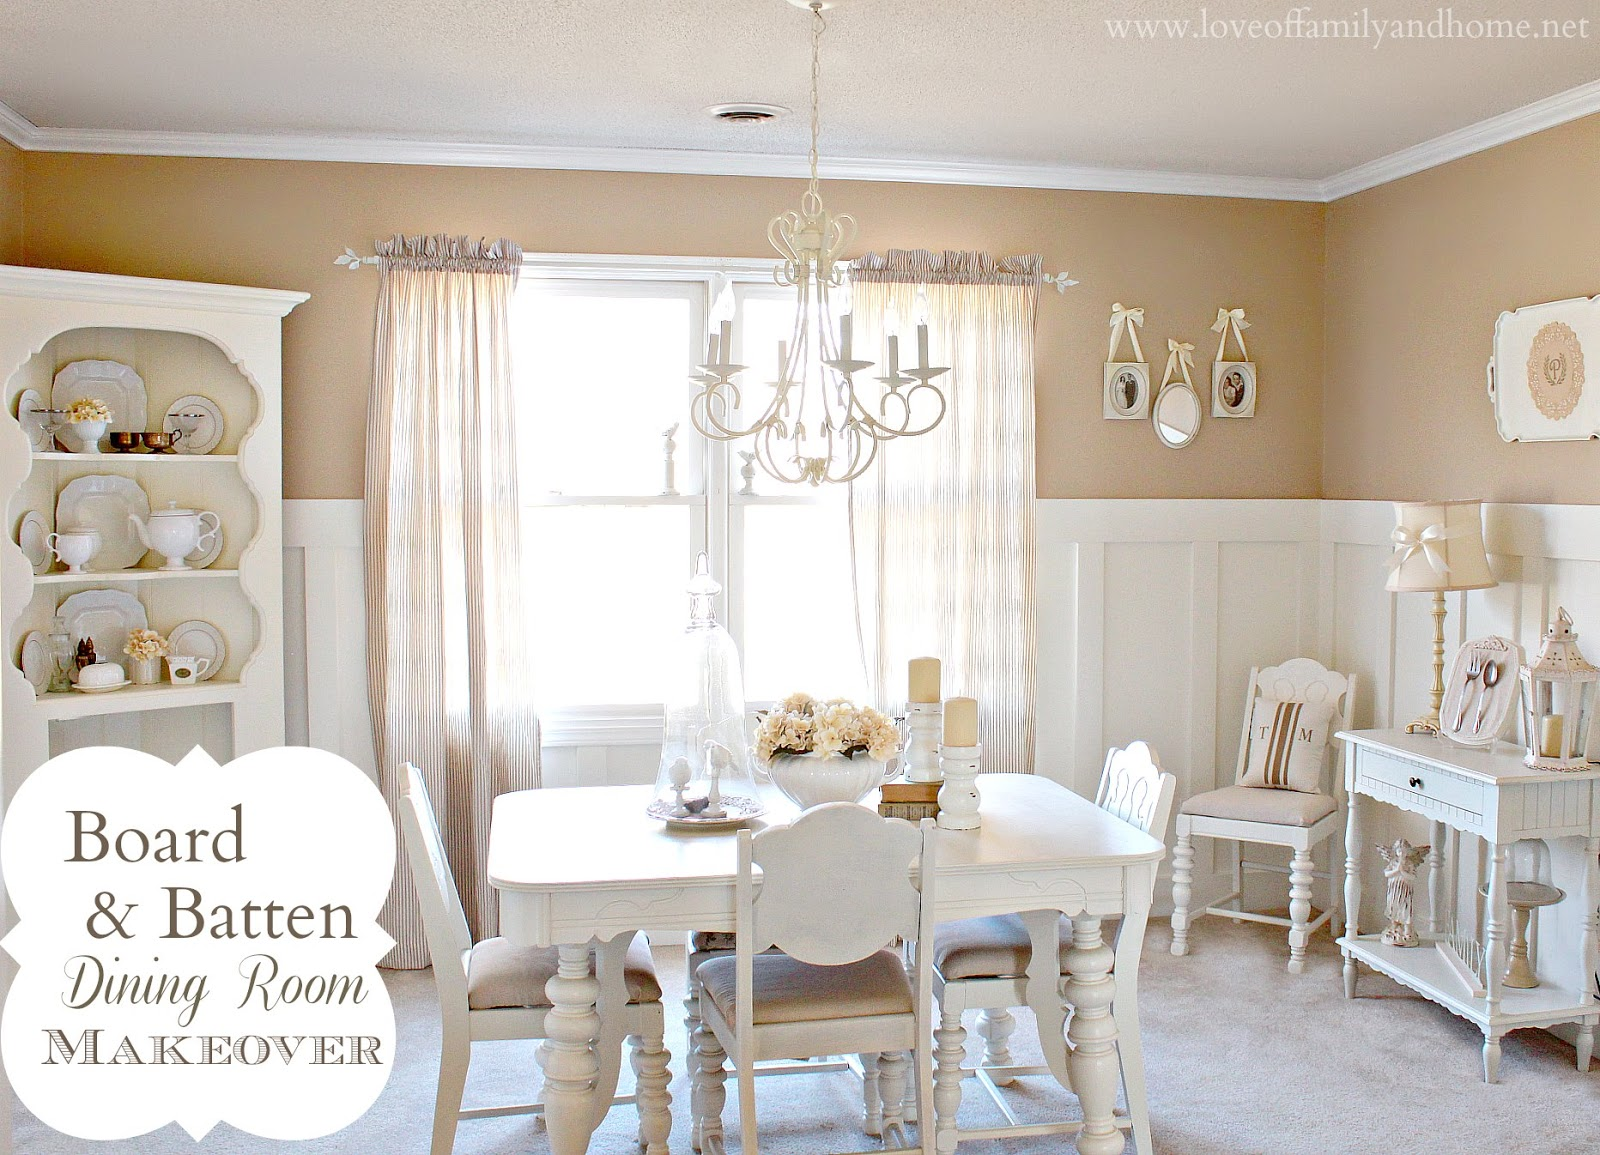 board batten dining room makeover love of family home